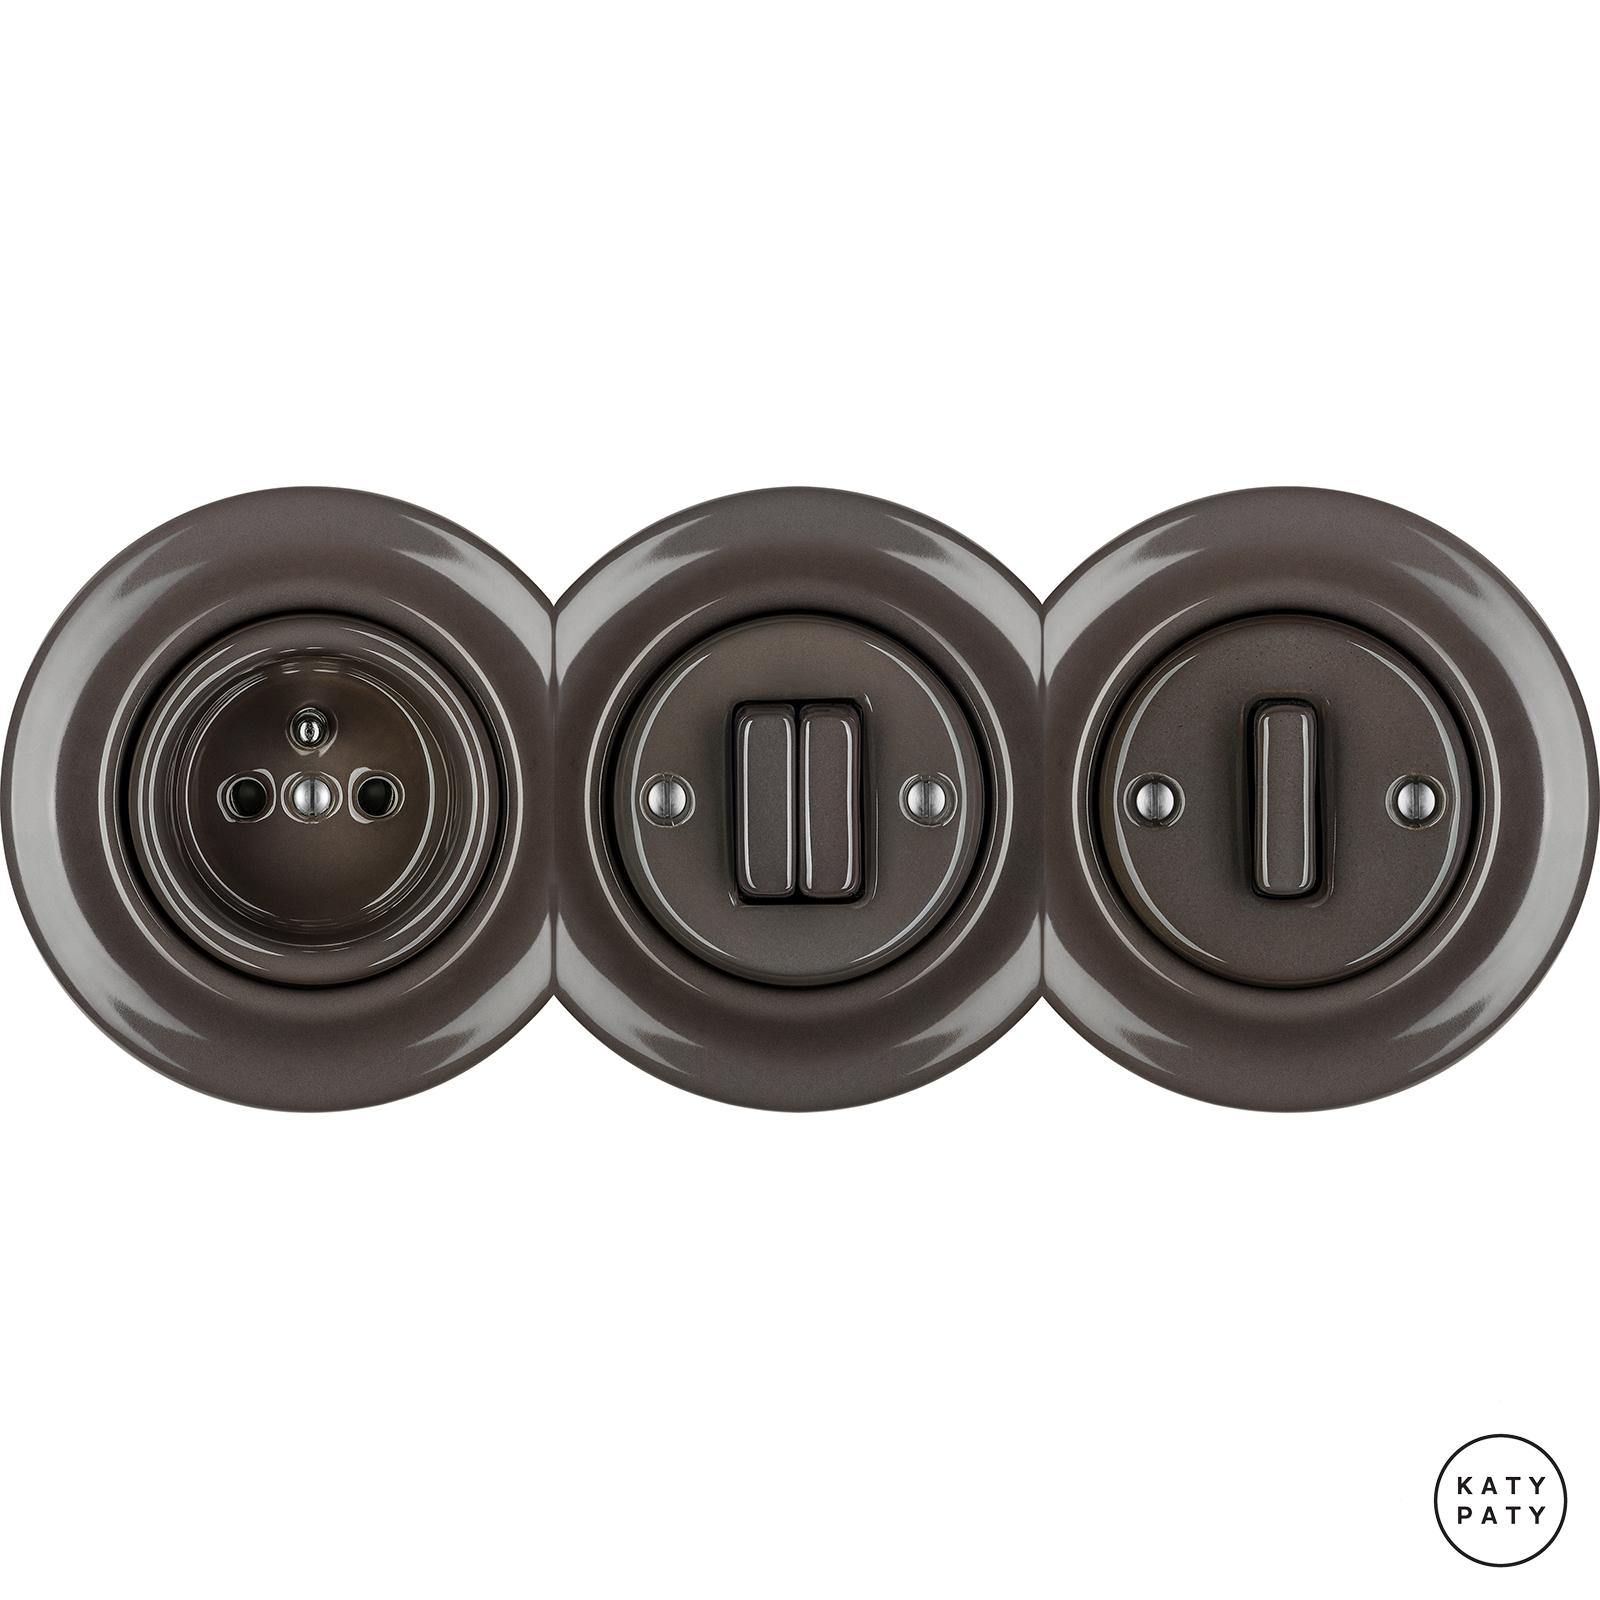 Porcelain Toggle switches - 1 gang - multiple X ()  - BRUNETUM | Katy Paty